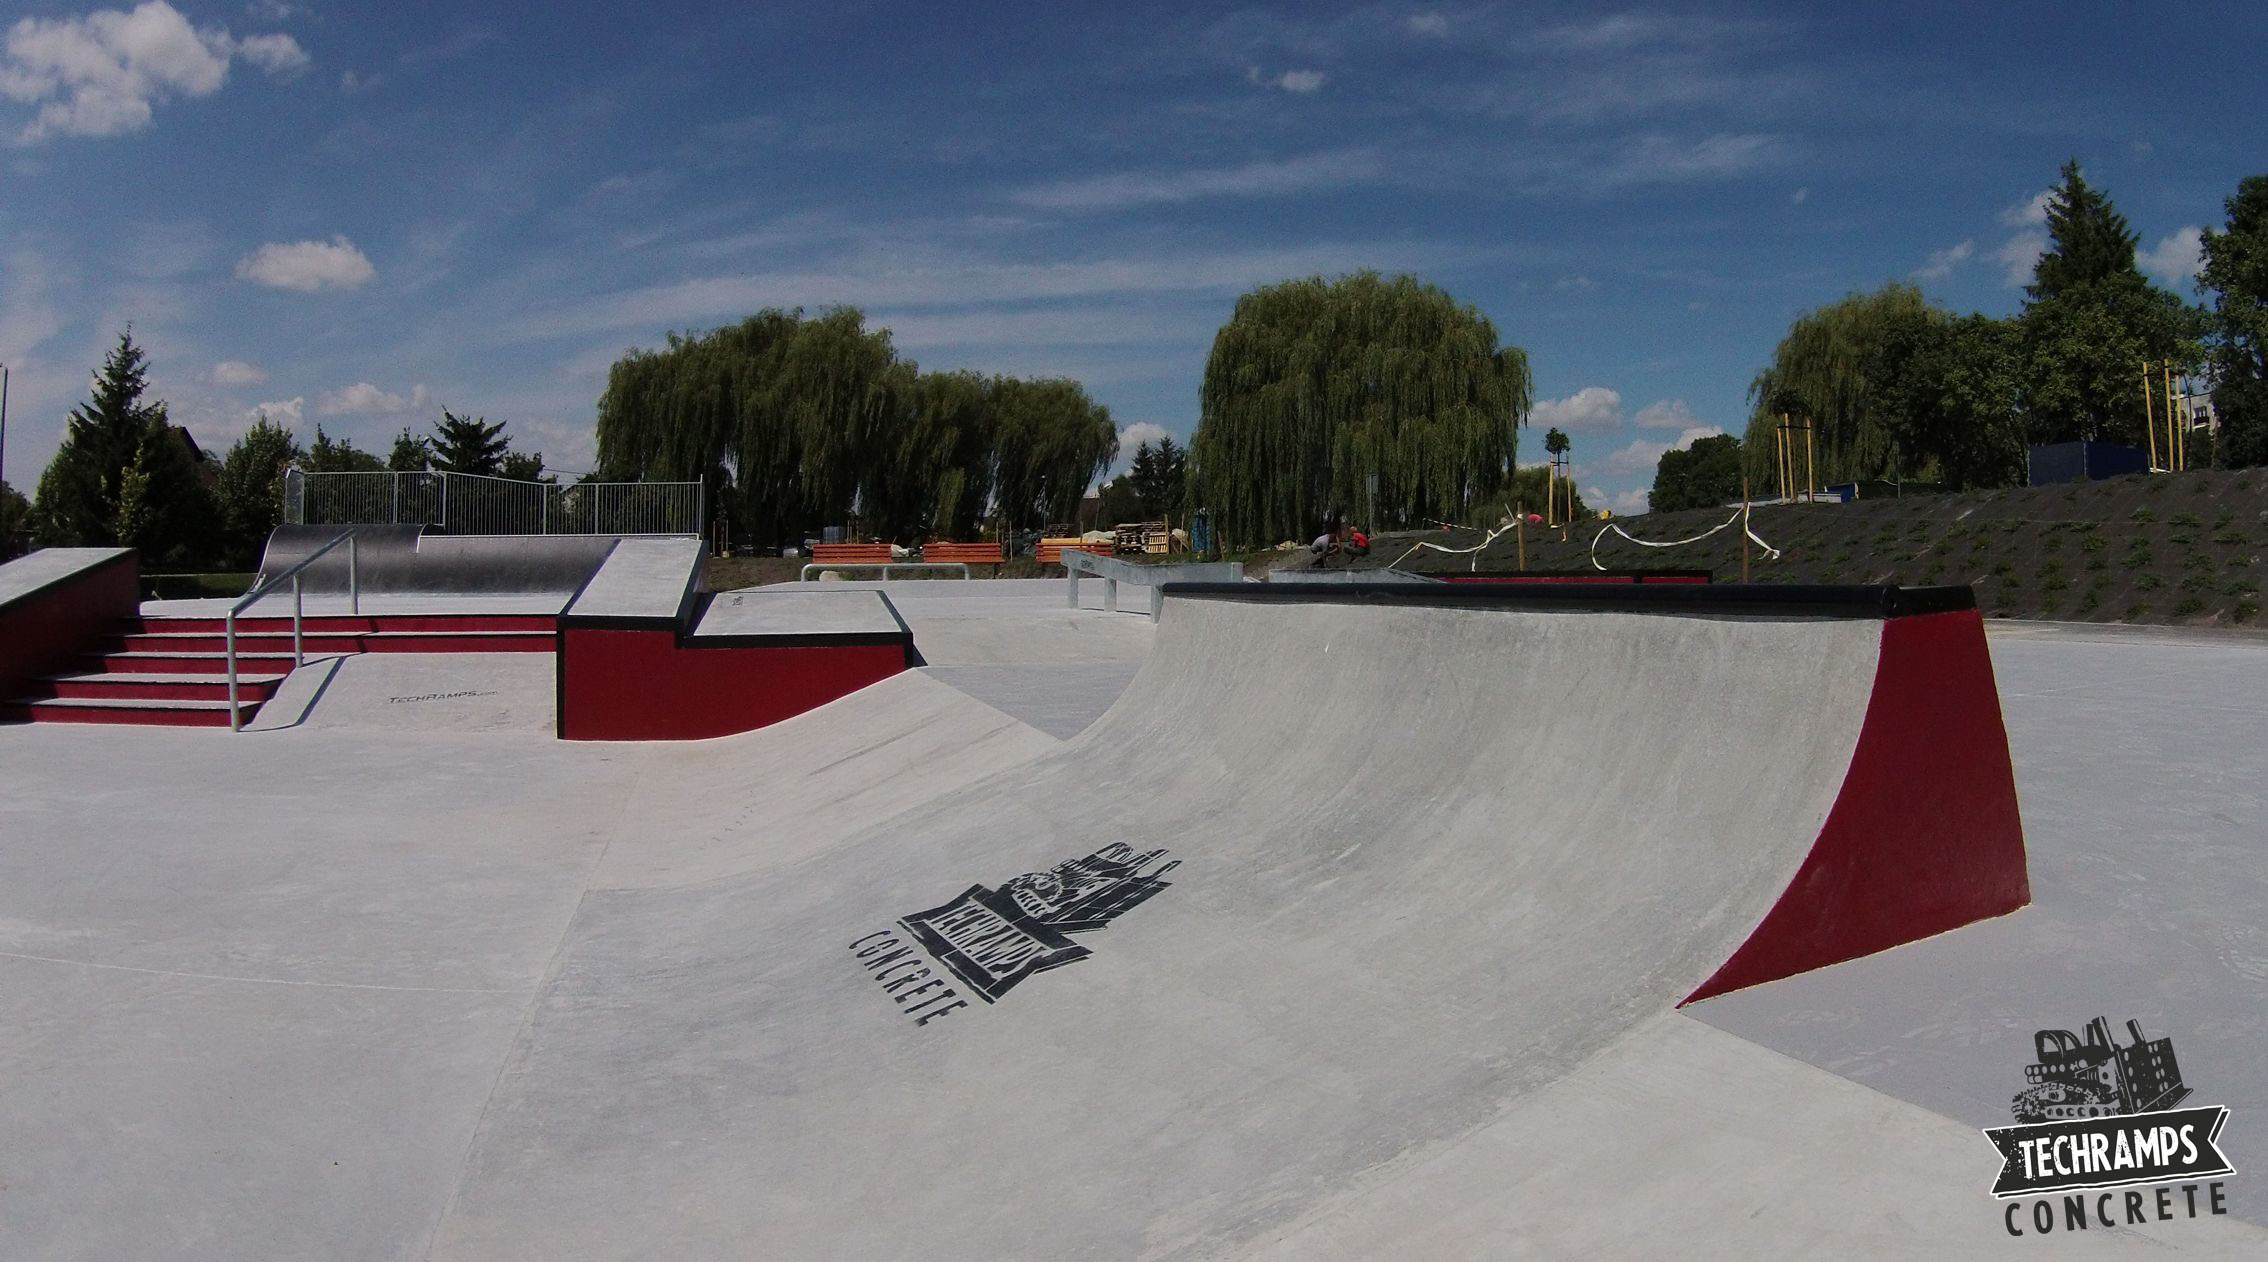 Skatepark Techramps in Buskers Spa